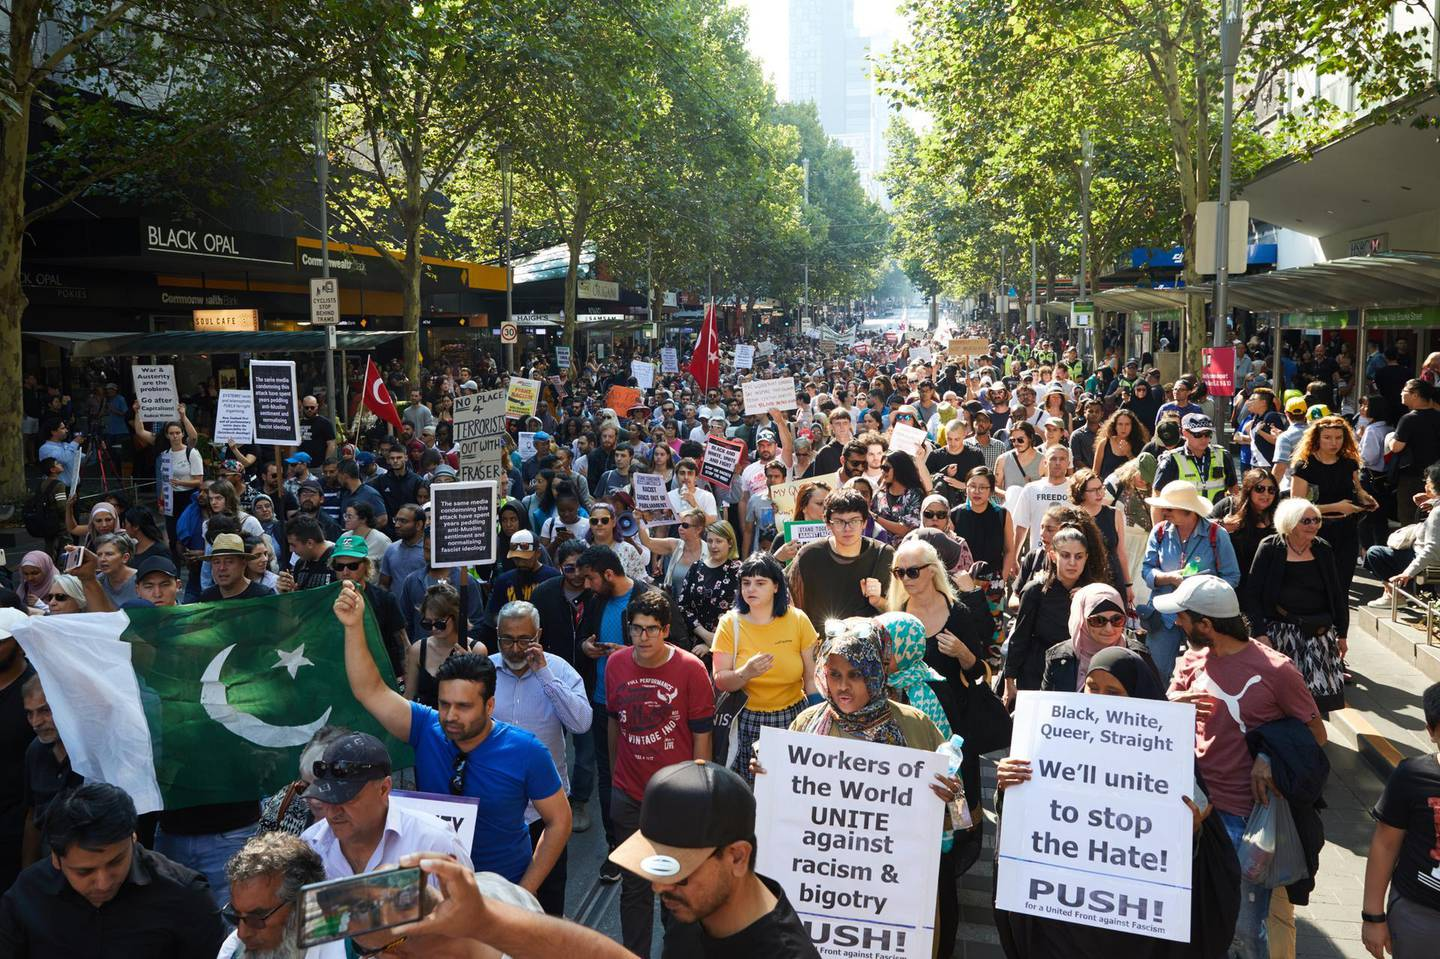 epa07441371 Demonstrators take part in an anti-racist and anti-fascist rally against Islamophobia in Melbourne, Australia, 16 March 2019. At least 49 people were killed by a gunman, believed to be Brenton Harrison Tarrant, and 20 more injured and in critical condition during the terrorist attacks against two mosques in New Zealand during Friday prayers on 15 March.  EPA/ERIK ANDERSON AUSTRALIA AND NEW ZEALAND OUT